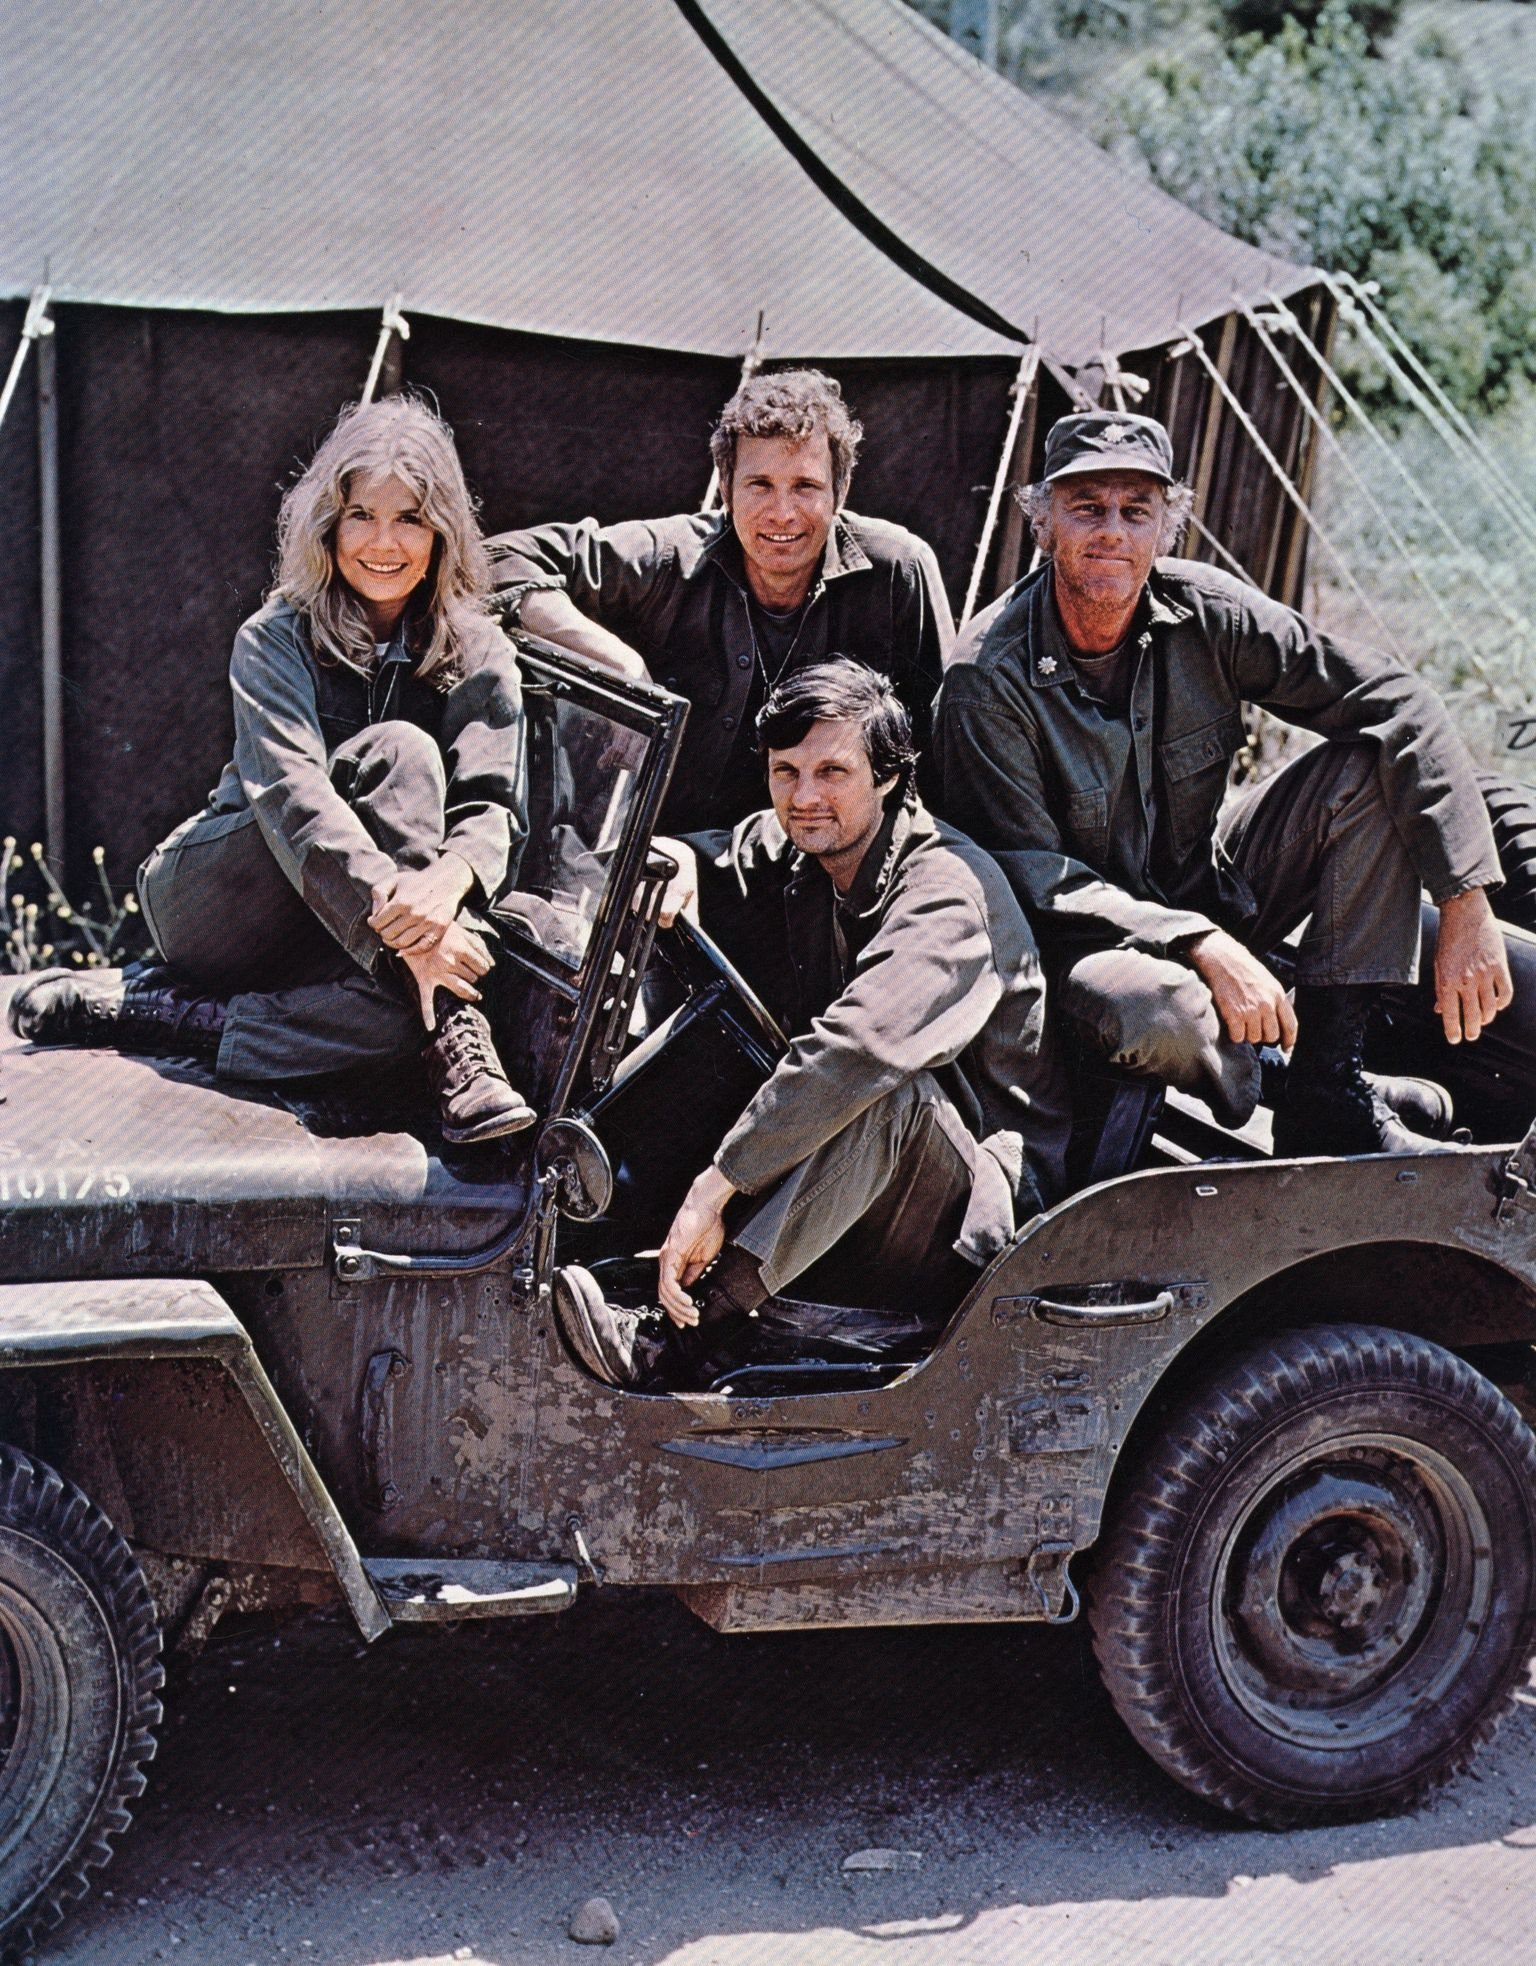 American actor, director and writer Alan Alda in the driving seat of a jeep, surrounded by Loretta Swit and other cast members of the hit television show M.A.S.H | Getty Images